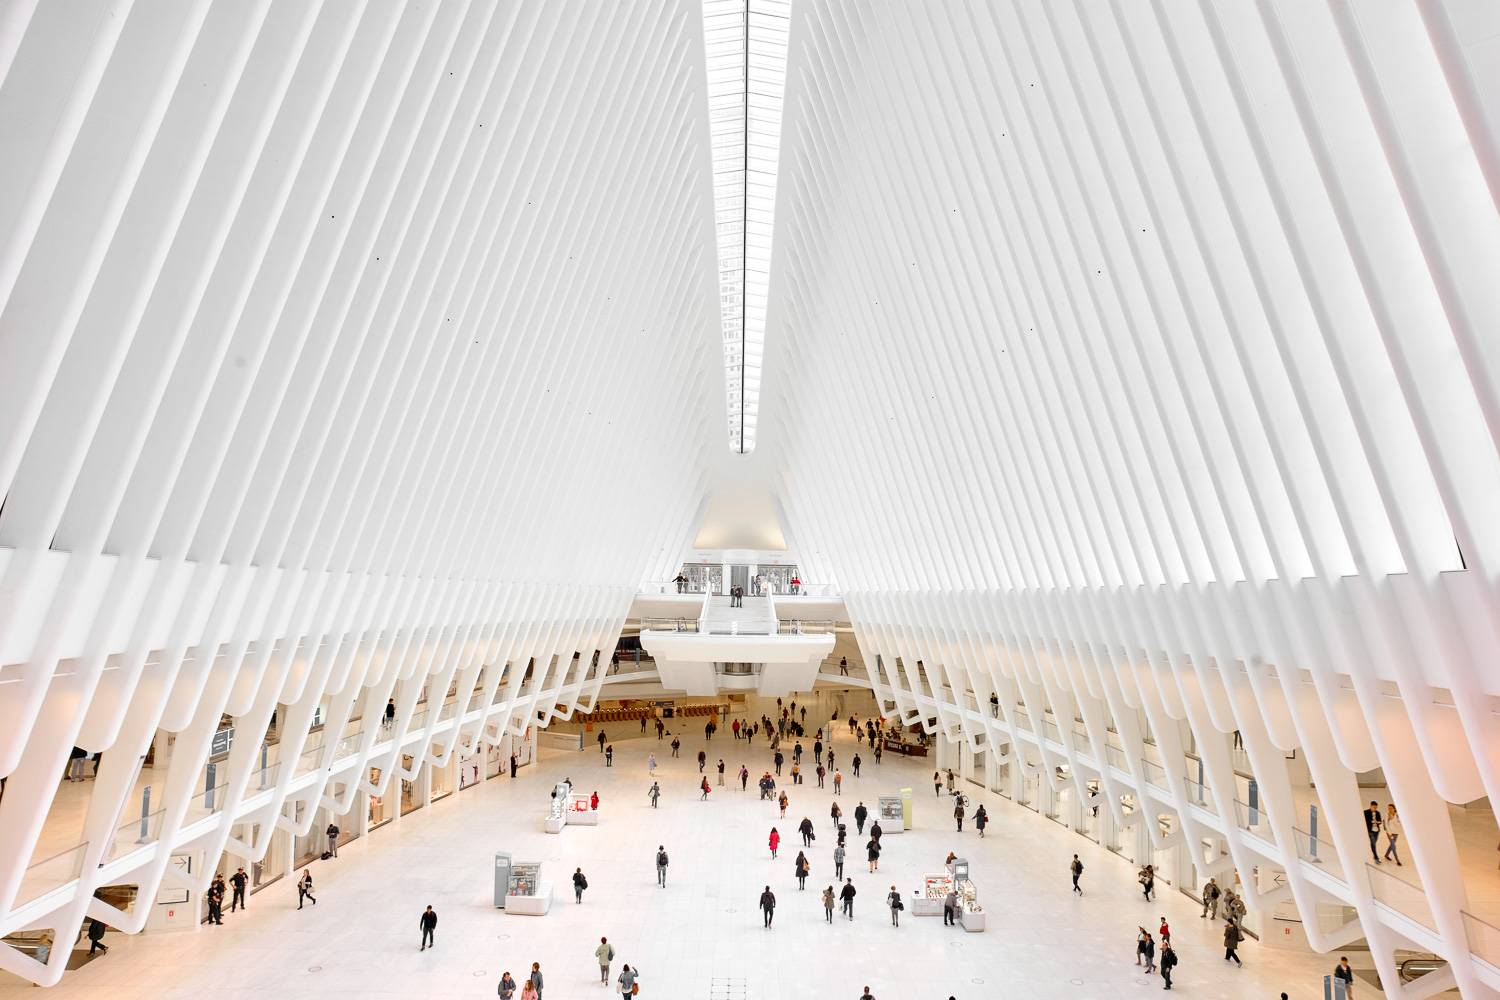 Image of the interior of the Oculus.